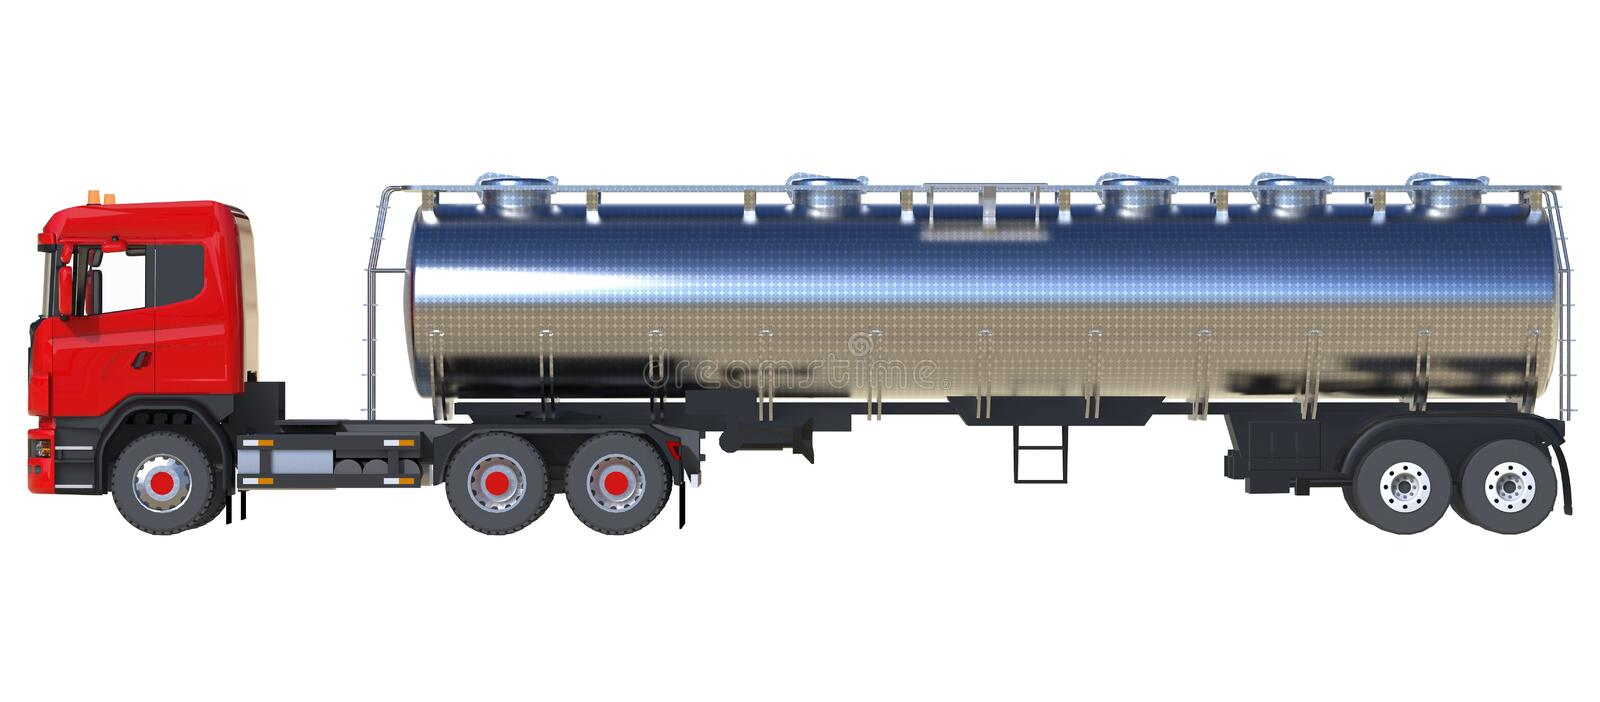 Large red truck tanker with a polished metal trailer. Views from all sides. 3d illustration. vector illustration